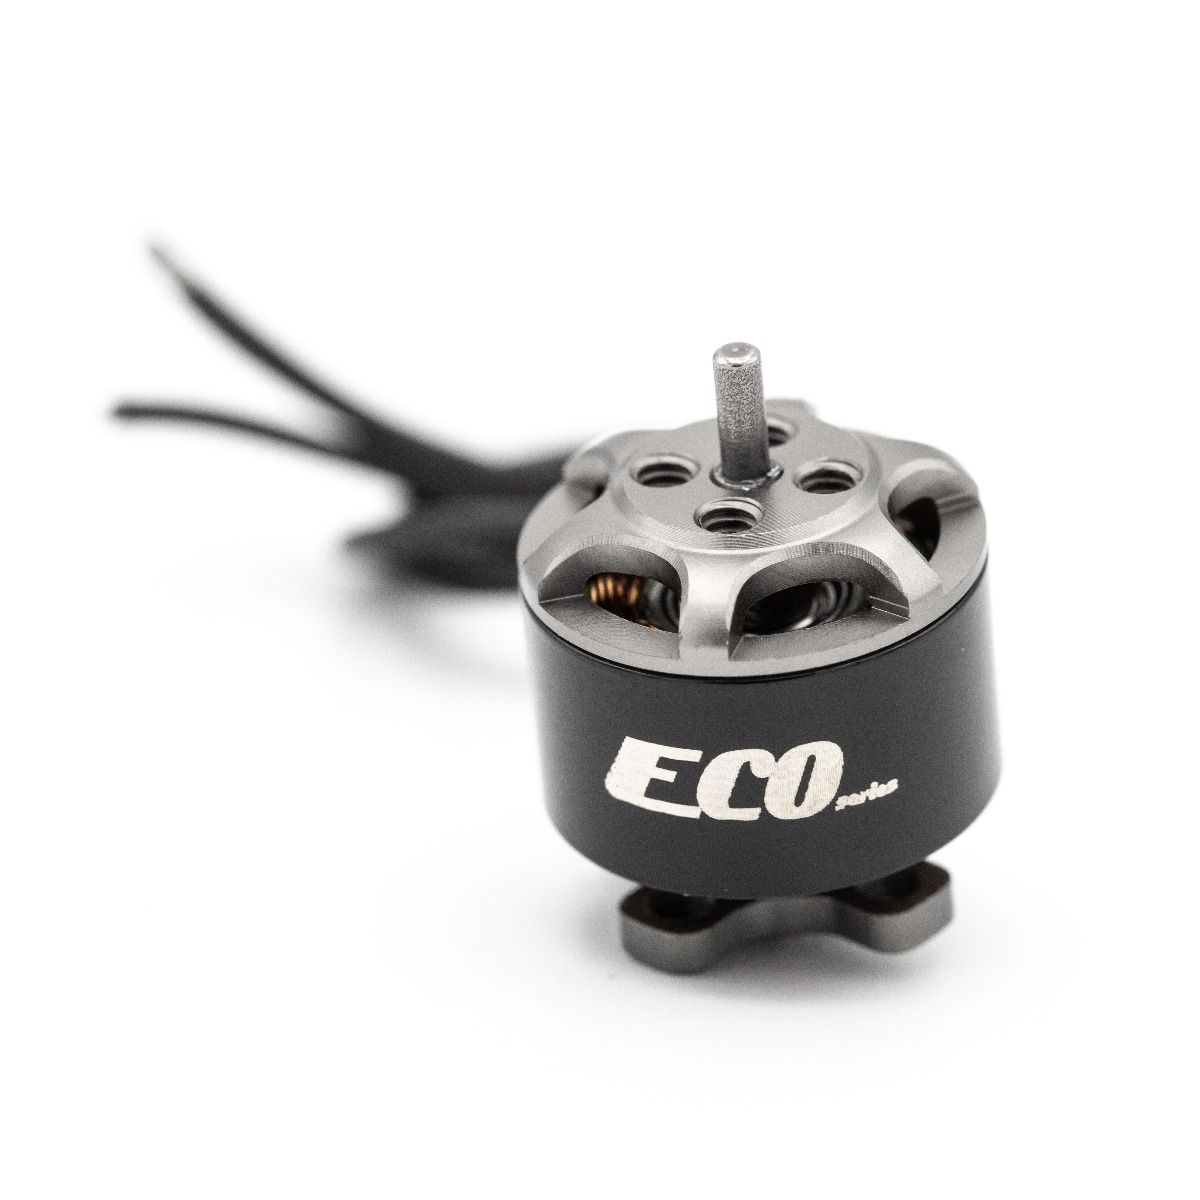 EMAX ECO SERIES <b>1106 4500KV 2-3S</b> BRUSHLESS MOTOR